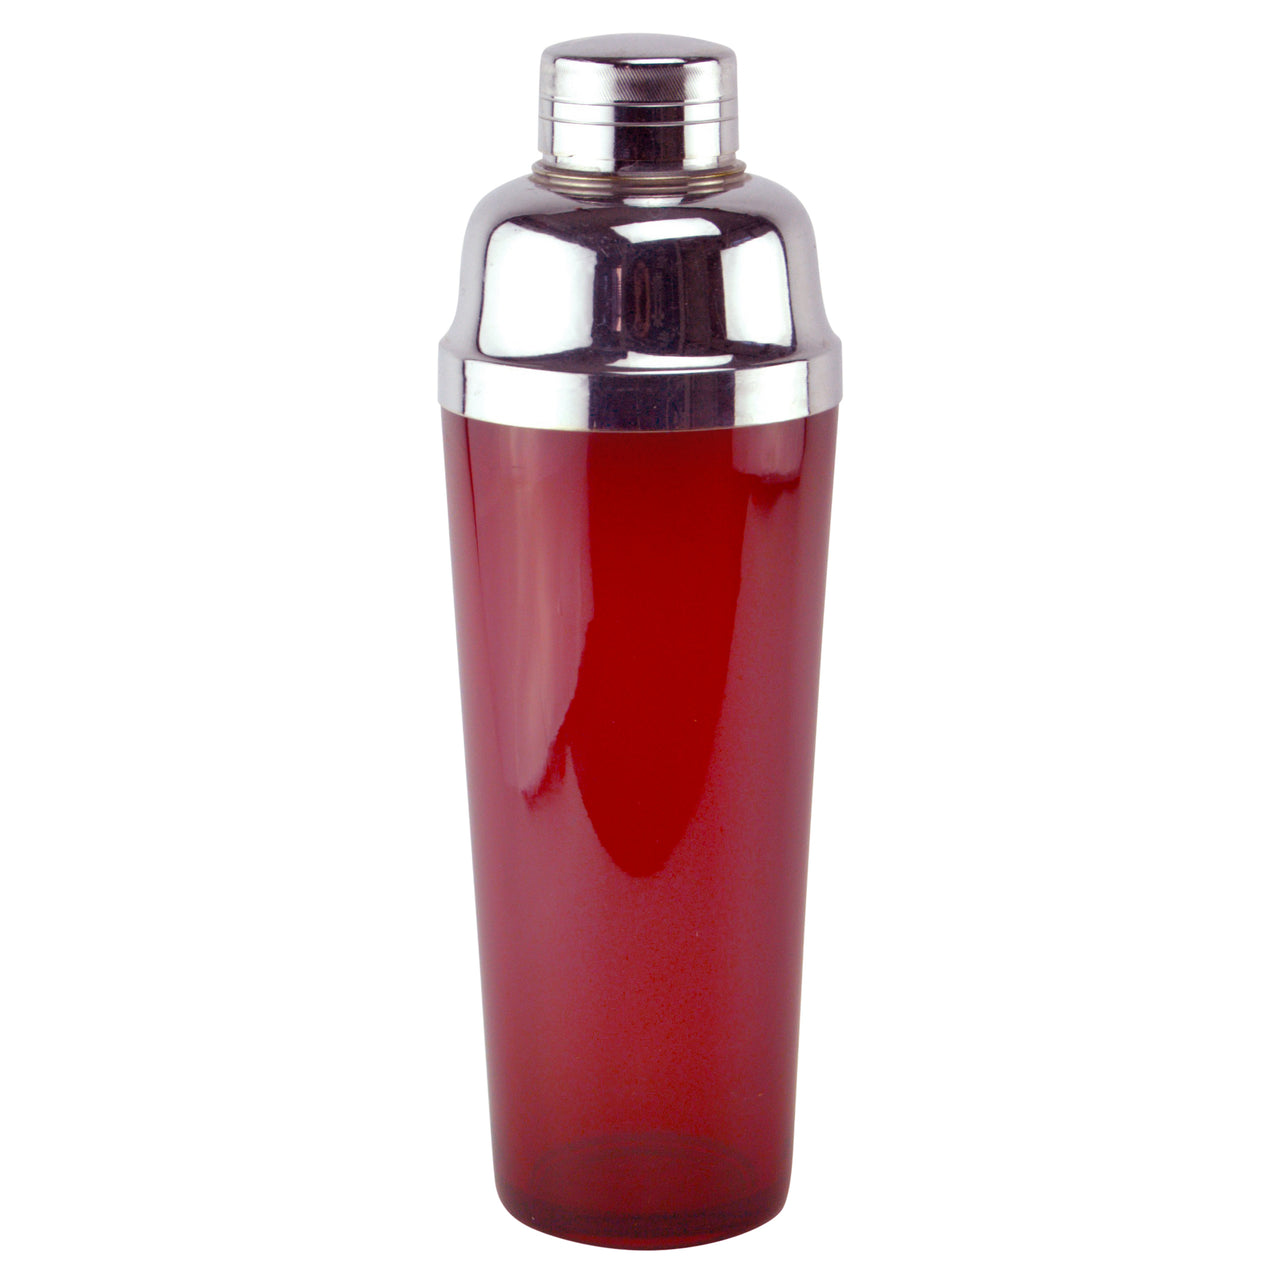 Ruby Red Tall Glass Cocktail Shaker